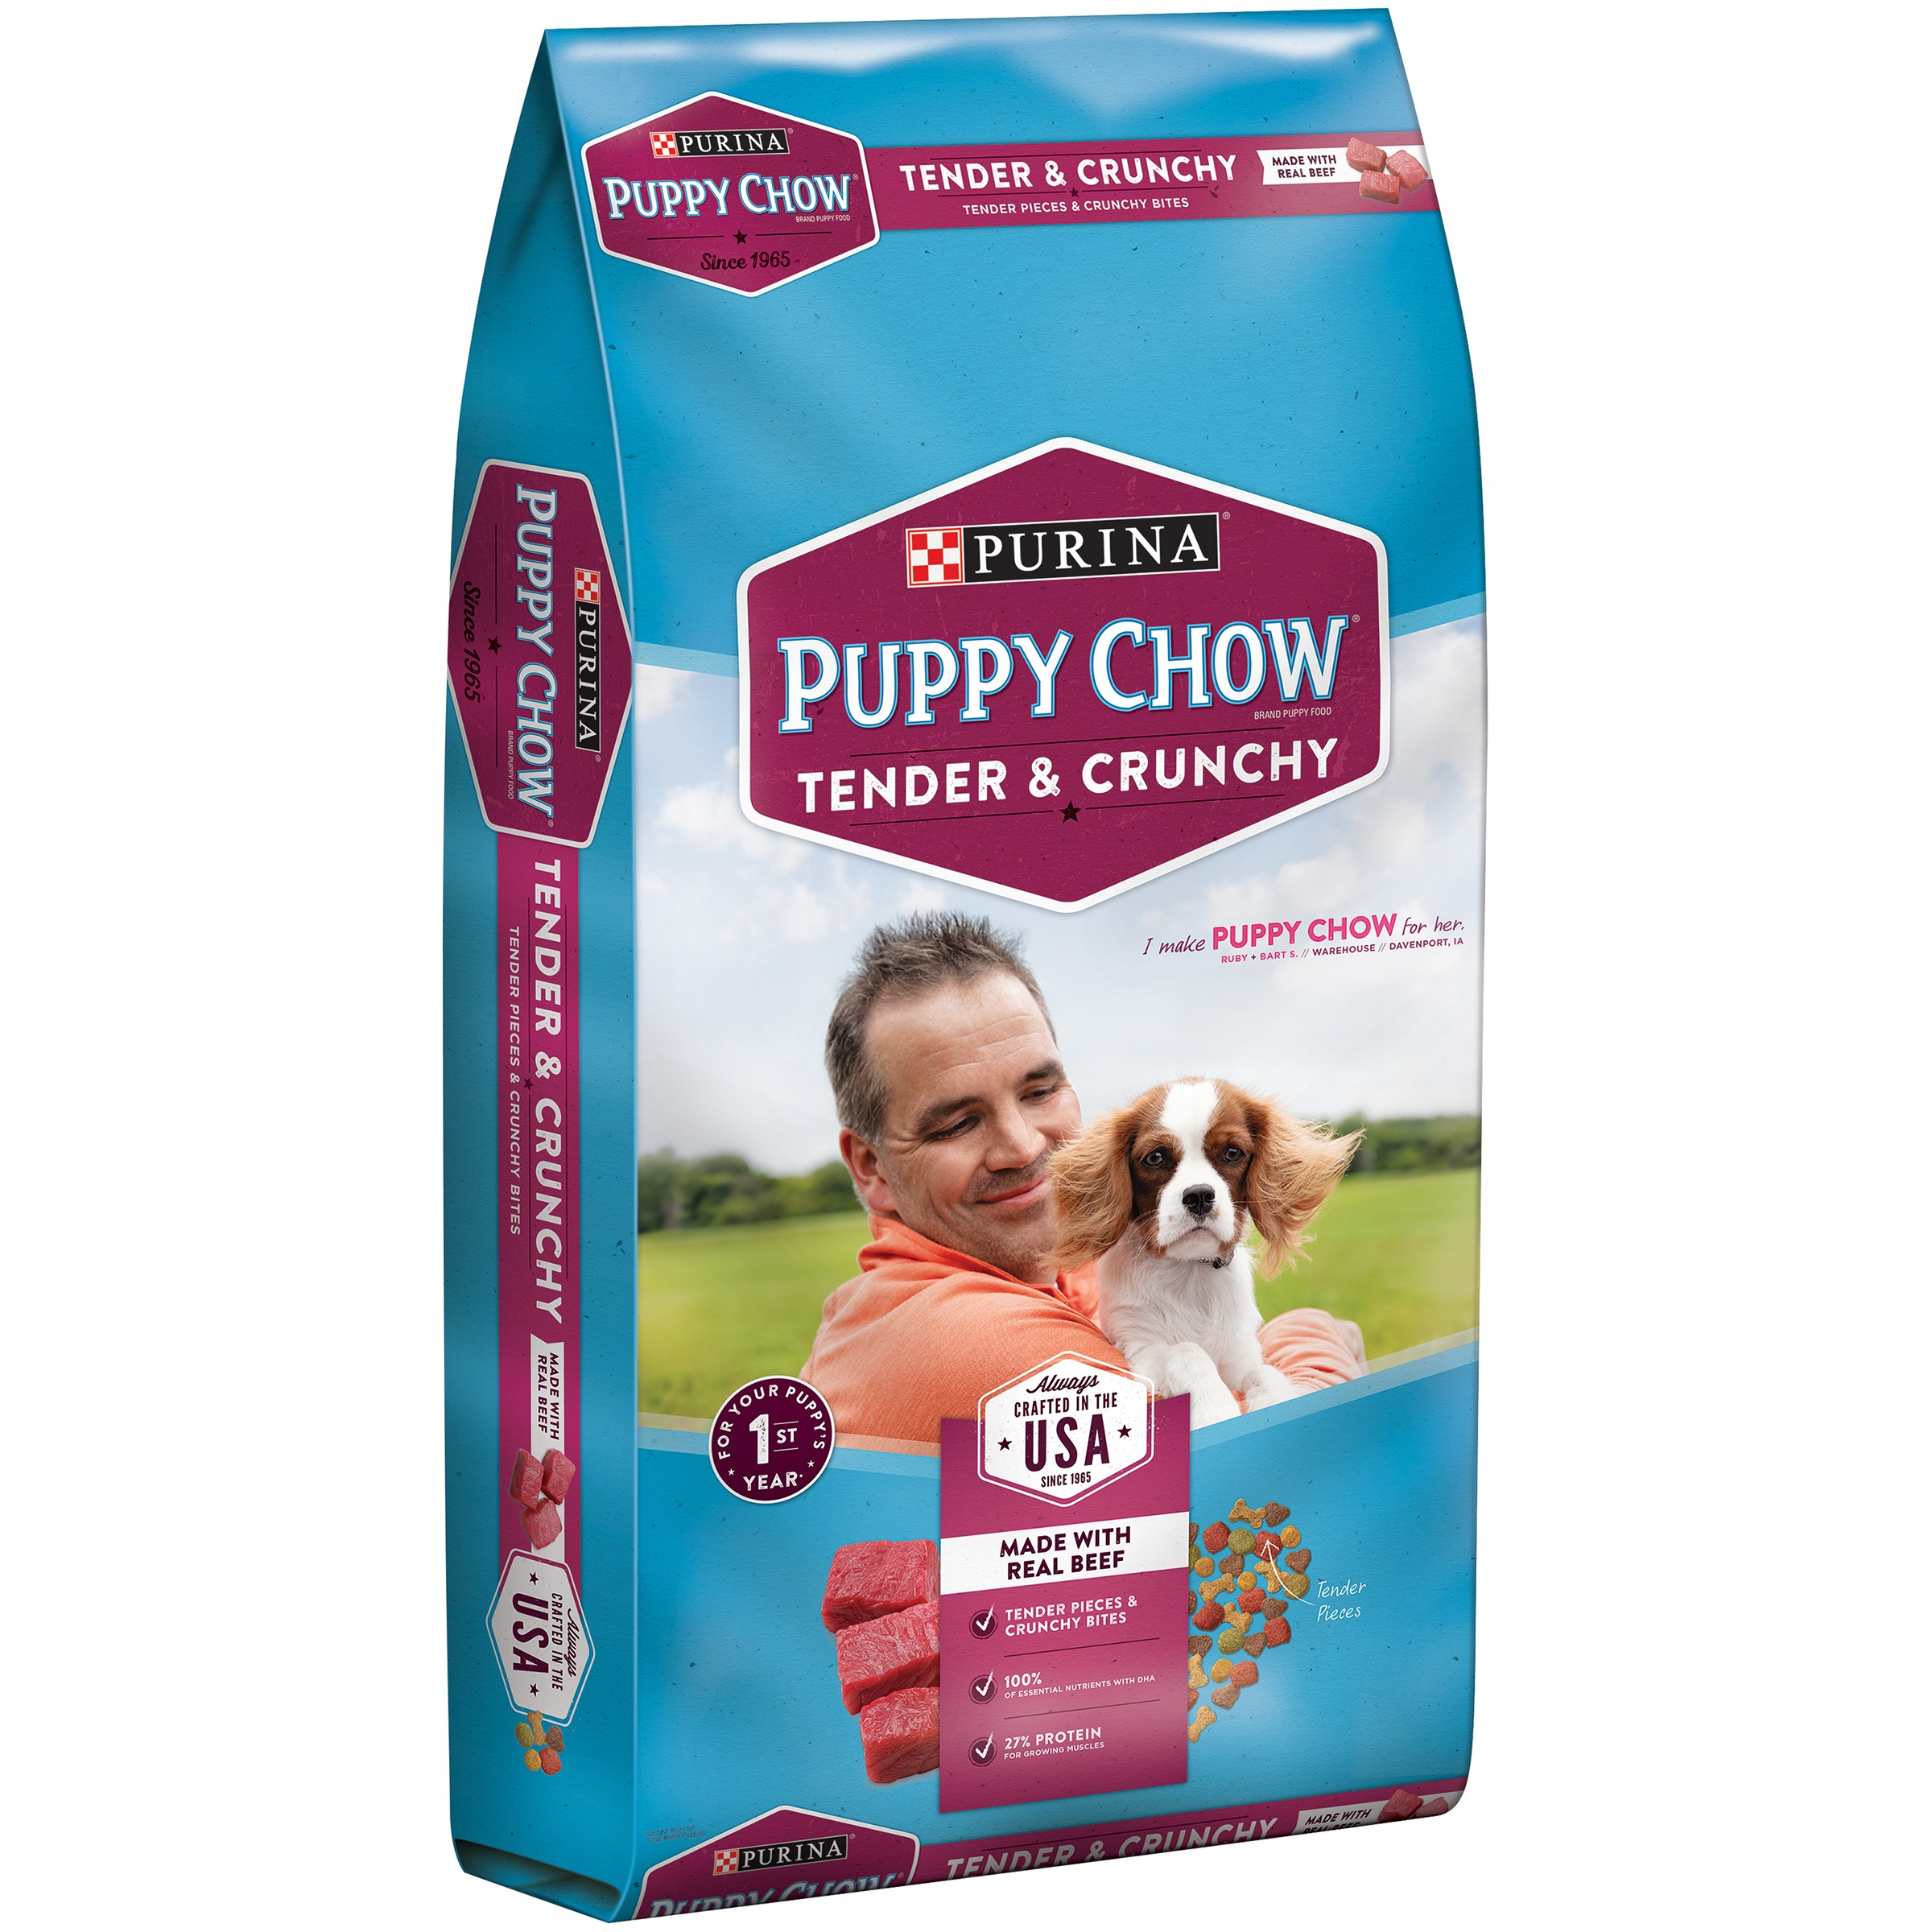 Purina Puppy Chow Tender and Crunchy Puppy Food 32 lb. Bag by Nestlé Purina PetCare Company